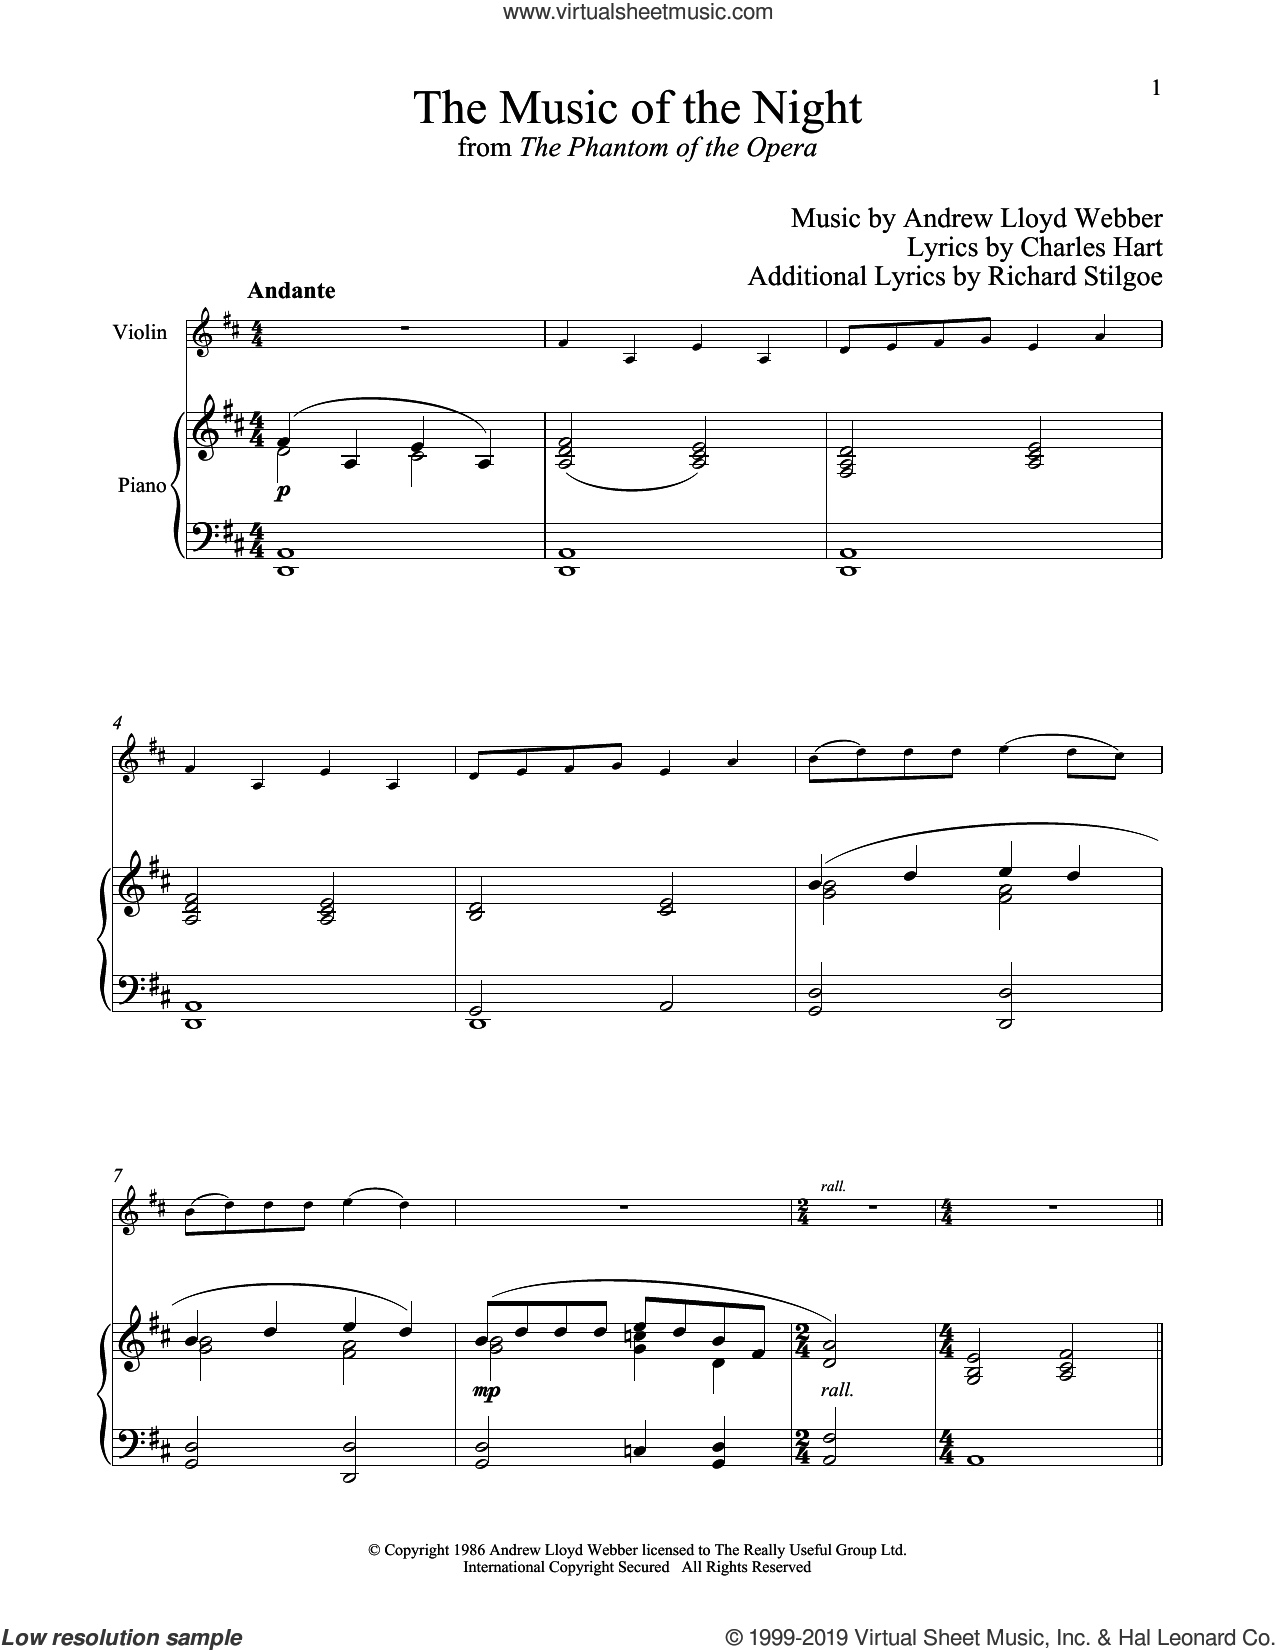 The Music of the Night (from The Phantom of the Opera) sheet music for violin and piano by Andrew Lloyd Webber, Charles Hart and Richard Stilgoe, intermediate skill level